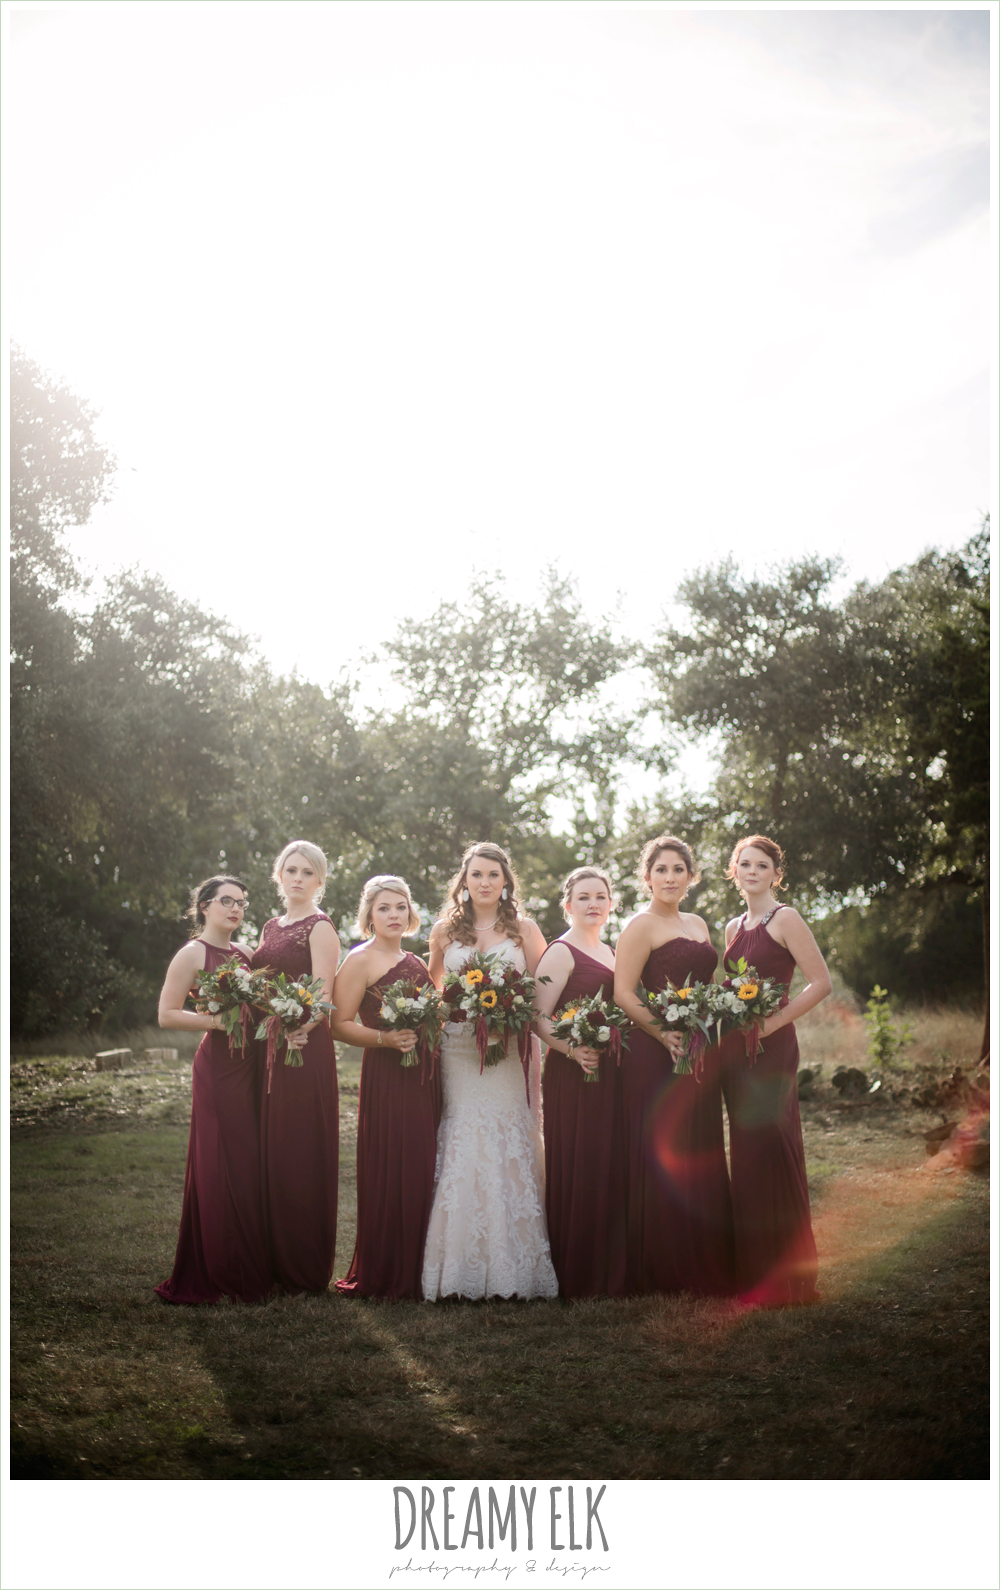 mix and match maroon long chiffon bridesmaid dresses, david's bridal, lustrebella, ventura's bridal fashions, sweetheart lace strapless fit and flare wedding dress, wild bunches floral, bride, bridesmaids, bridal party, maroon and gold fall wedding photo, la hacienda, dripping springs, texas {dreamy elk photography and design}